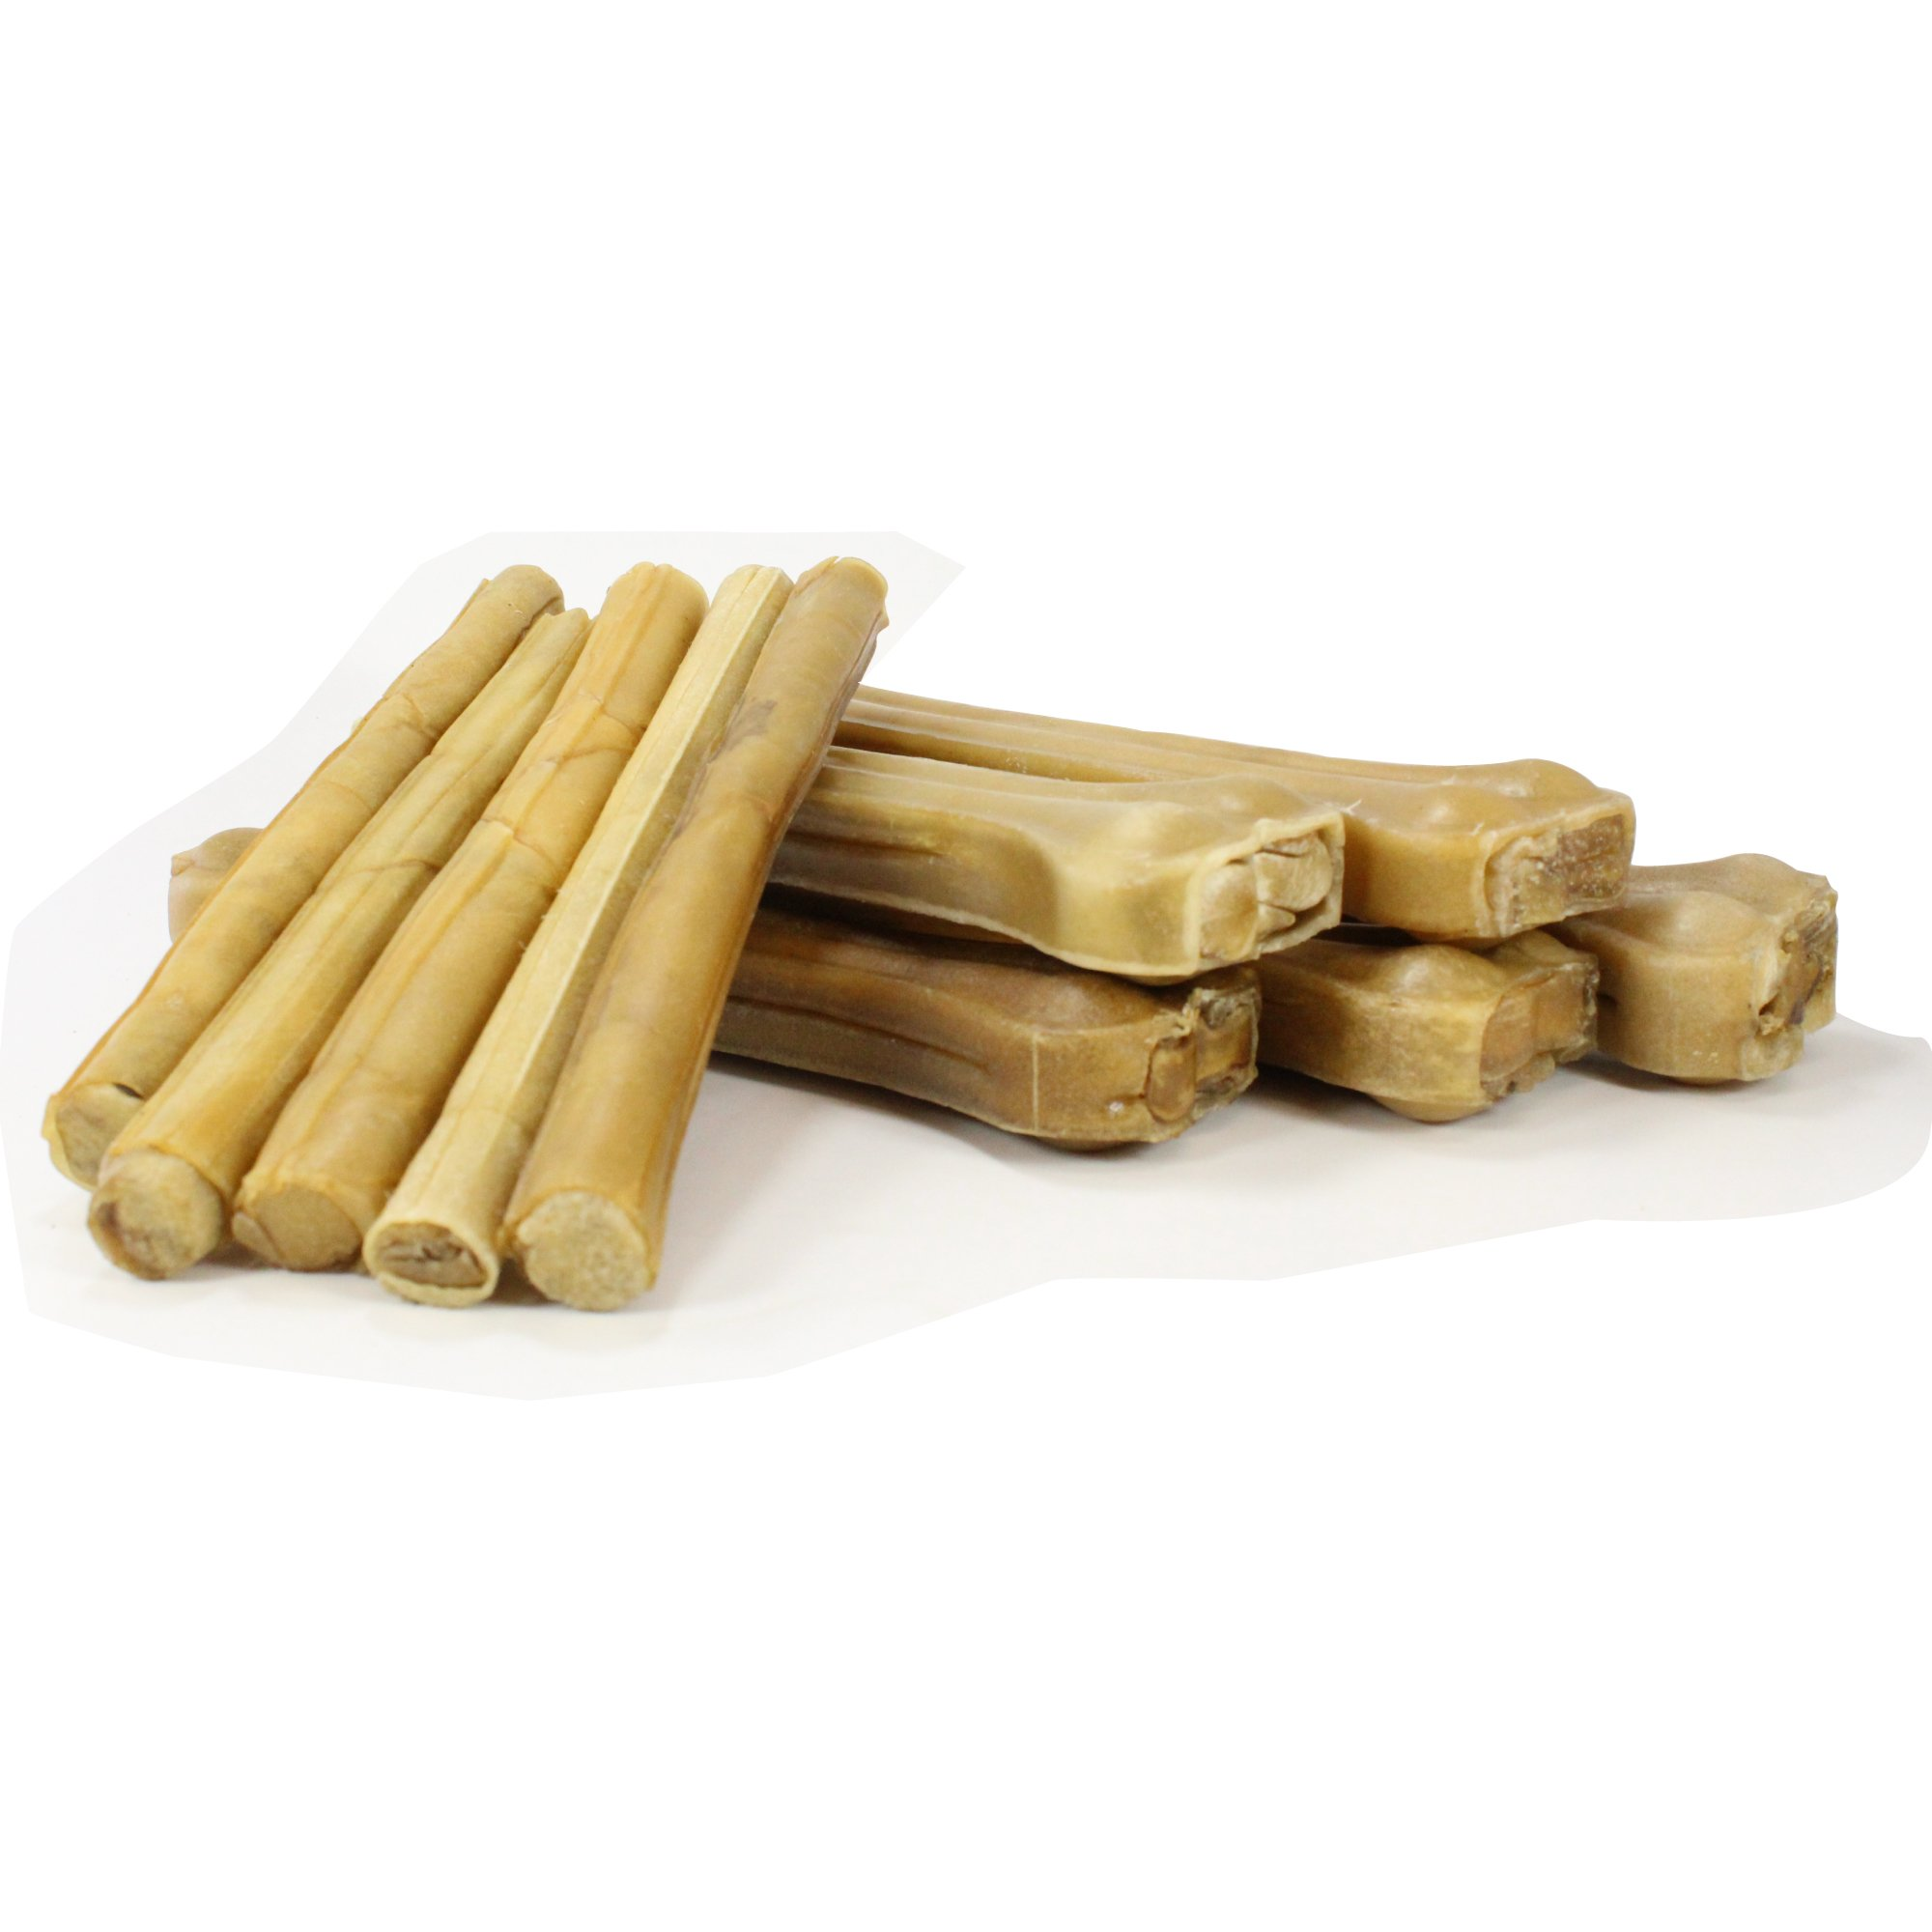 Raw Paws Dog Treats Variety Pack 10'' Compressed Rawhide Sticks & 10'' Pressed Rawhide Bones, 10-count - Large Dog Bones for Aggressive Chewers - Rawhide Chews Dog Treat Value Pack - Variety Dog Chews by Raw Paws (Image #1)